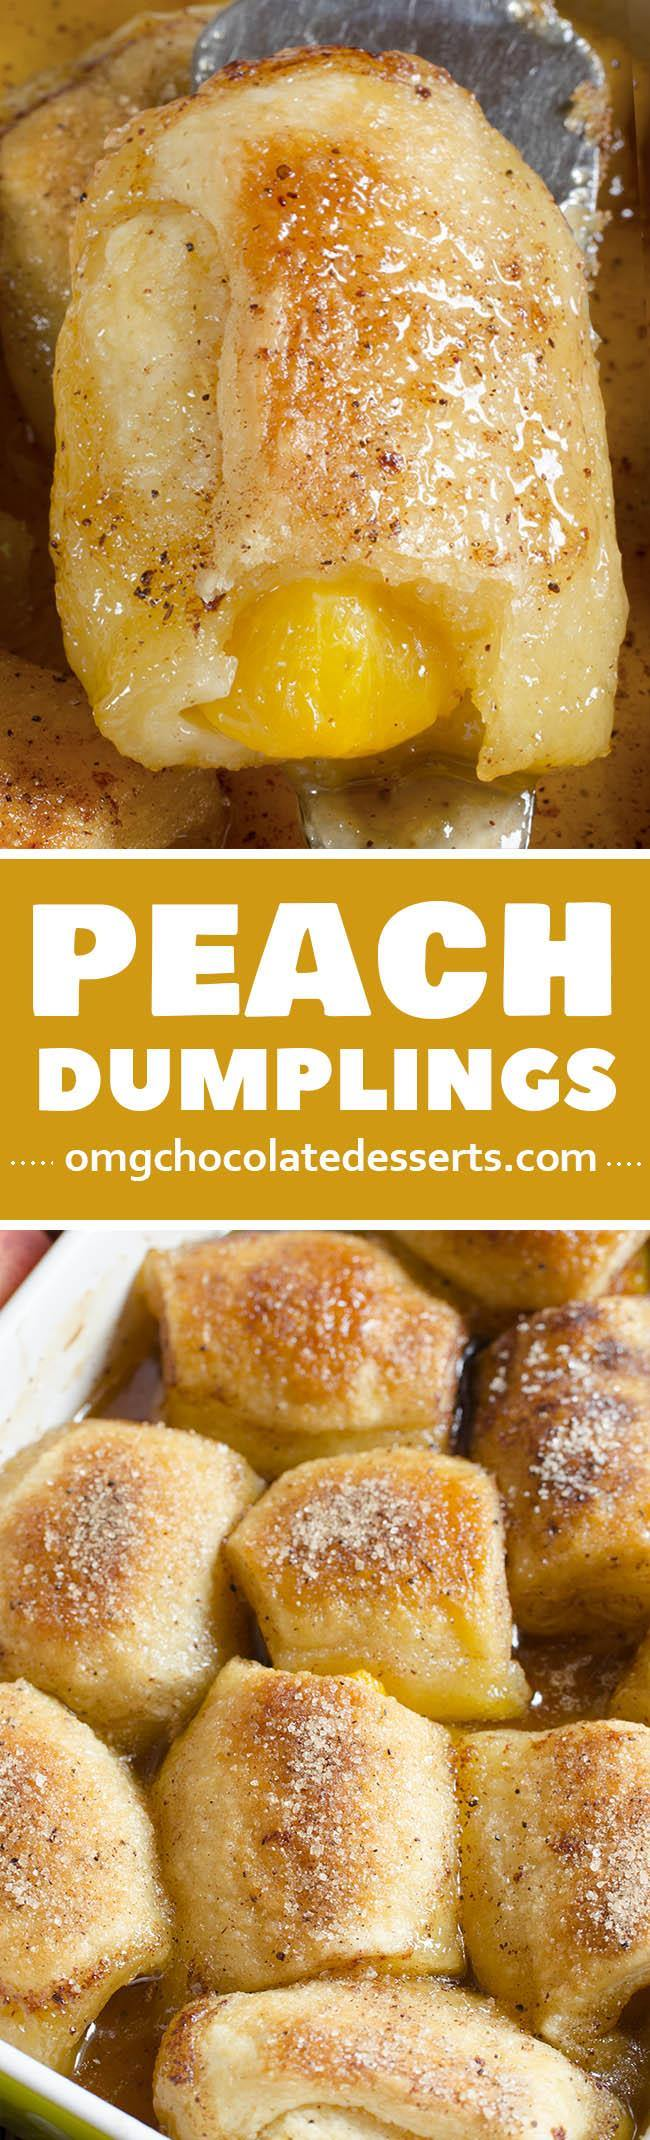 This Crescent Roll Peach Dumplings recipe is one of the Southern food dessert recipes. This is a great way to get a delicious, homemade dessert in less then 1 hour.